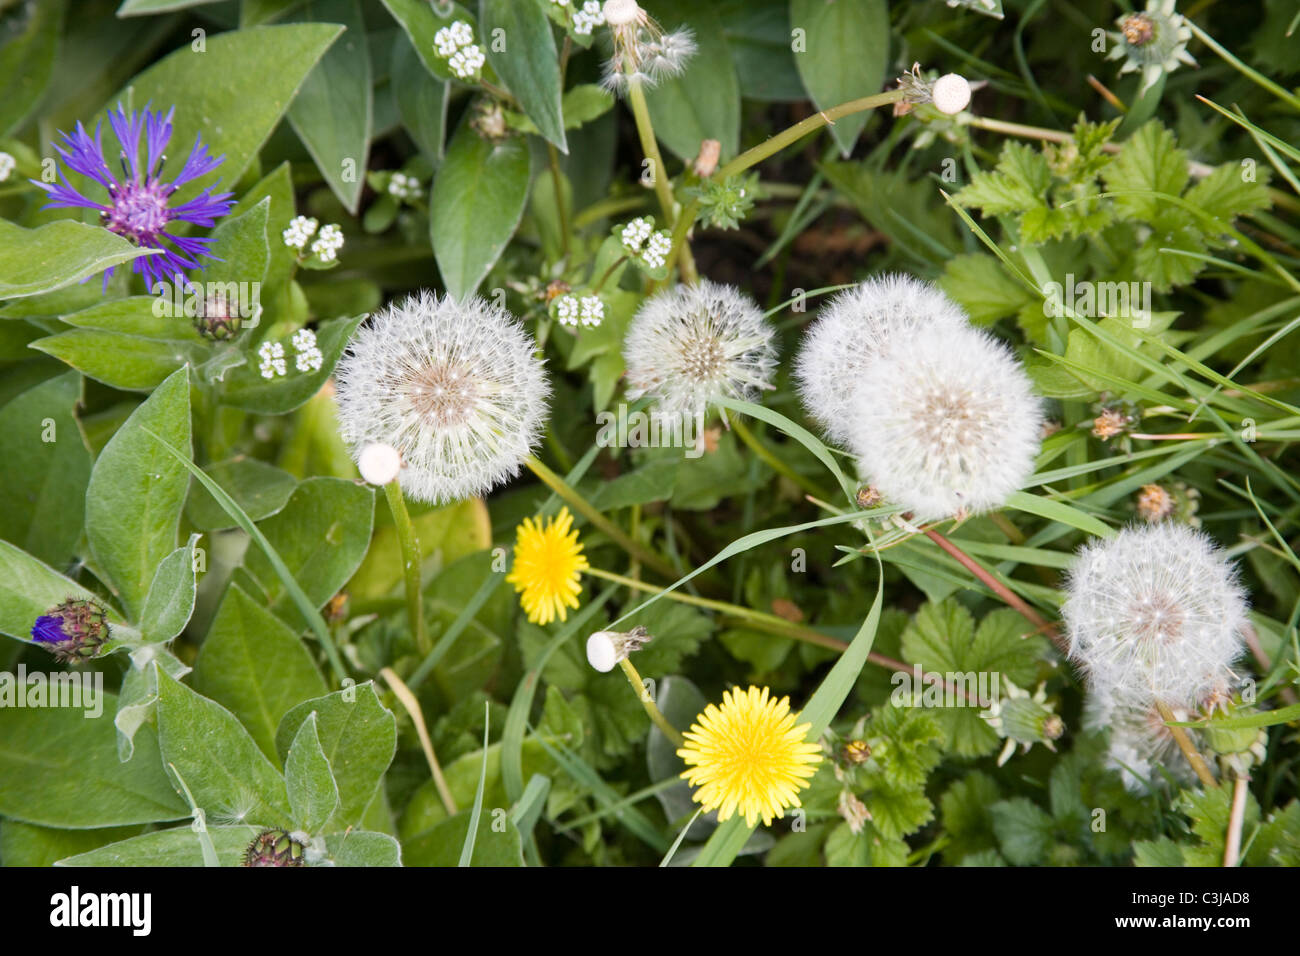 Weeds on allotment - Stock Image